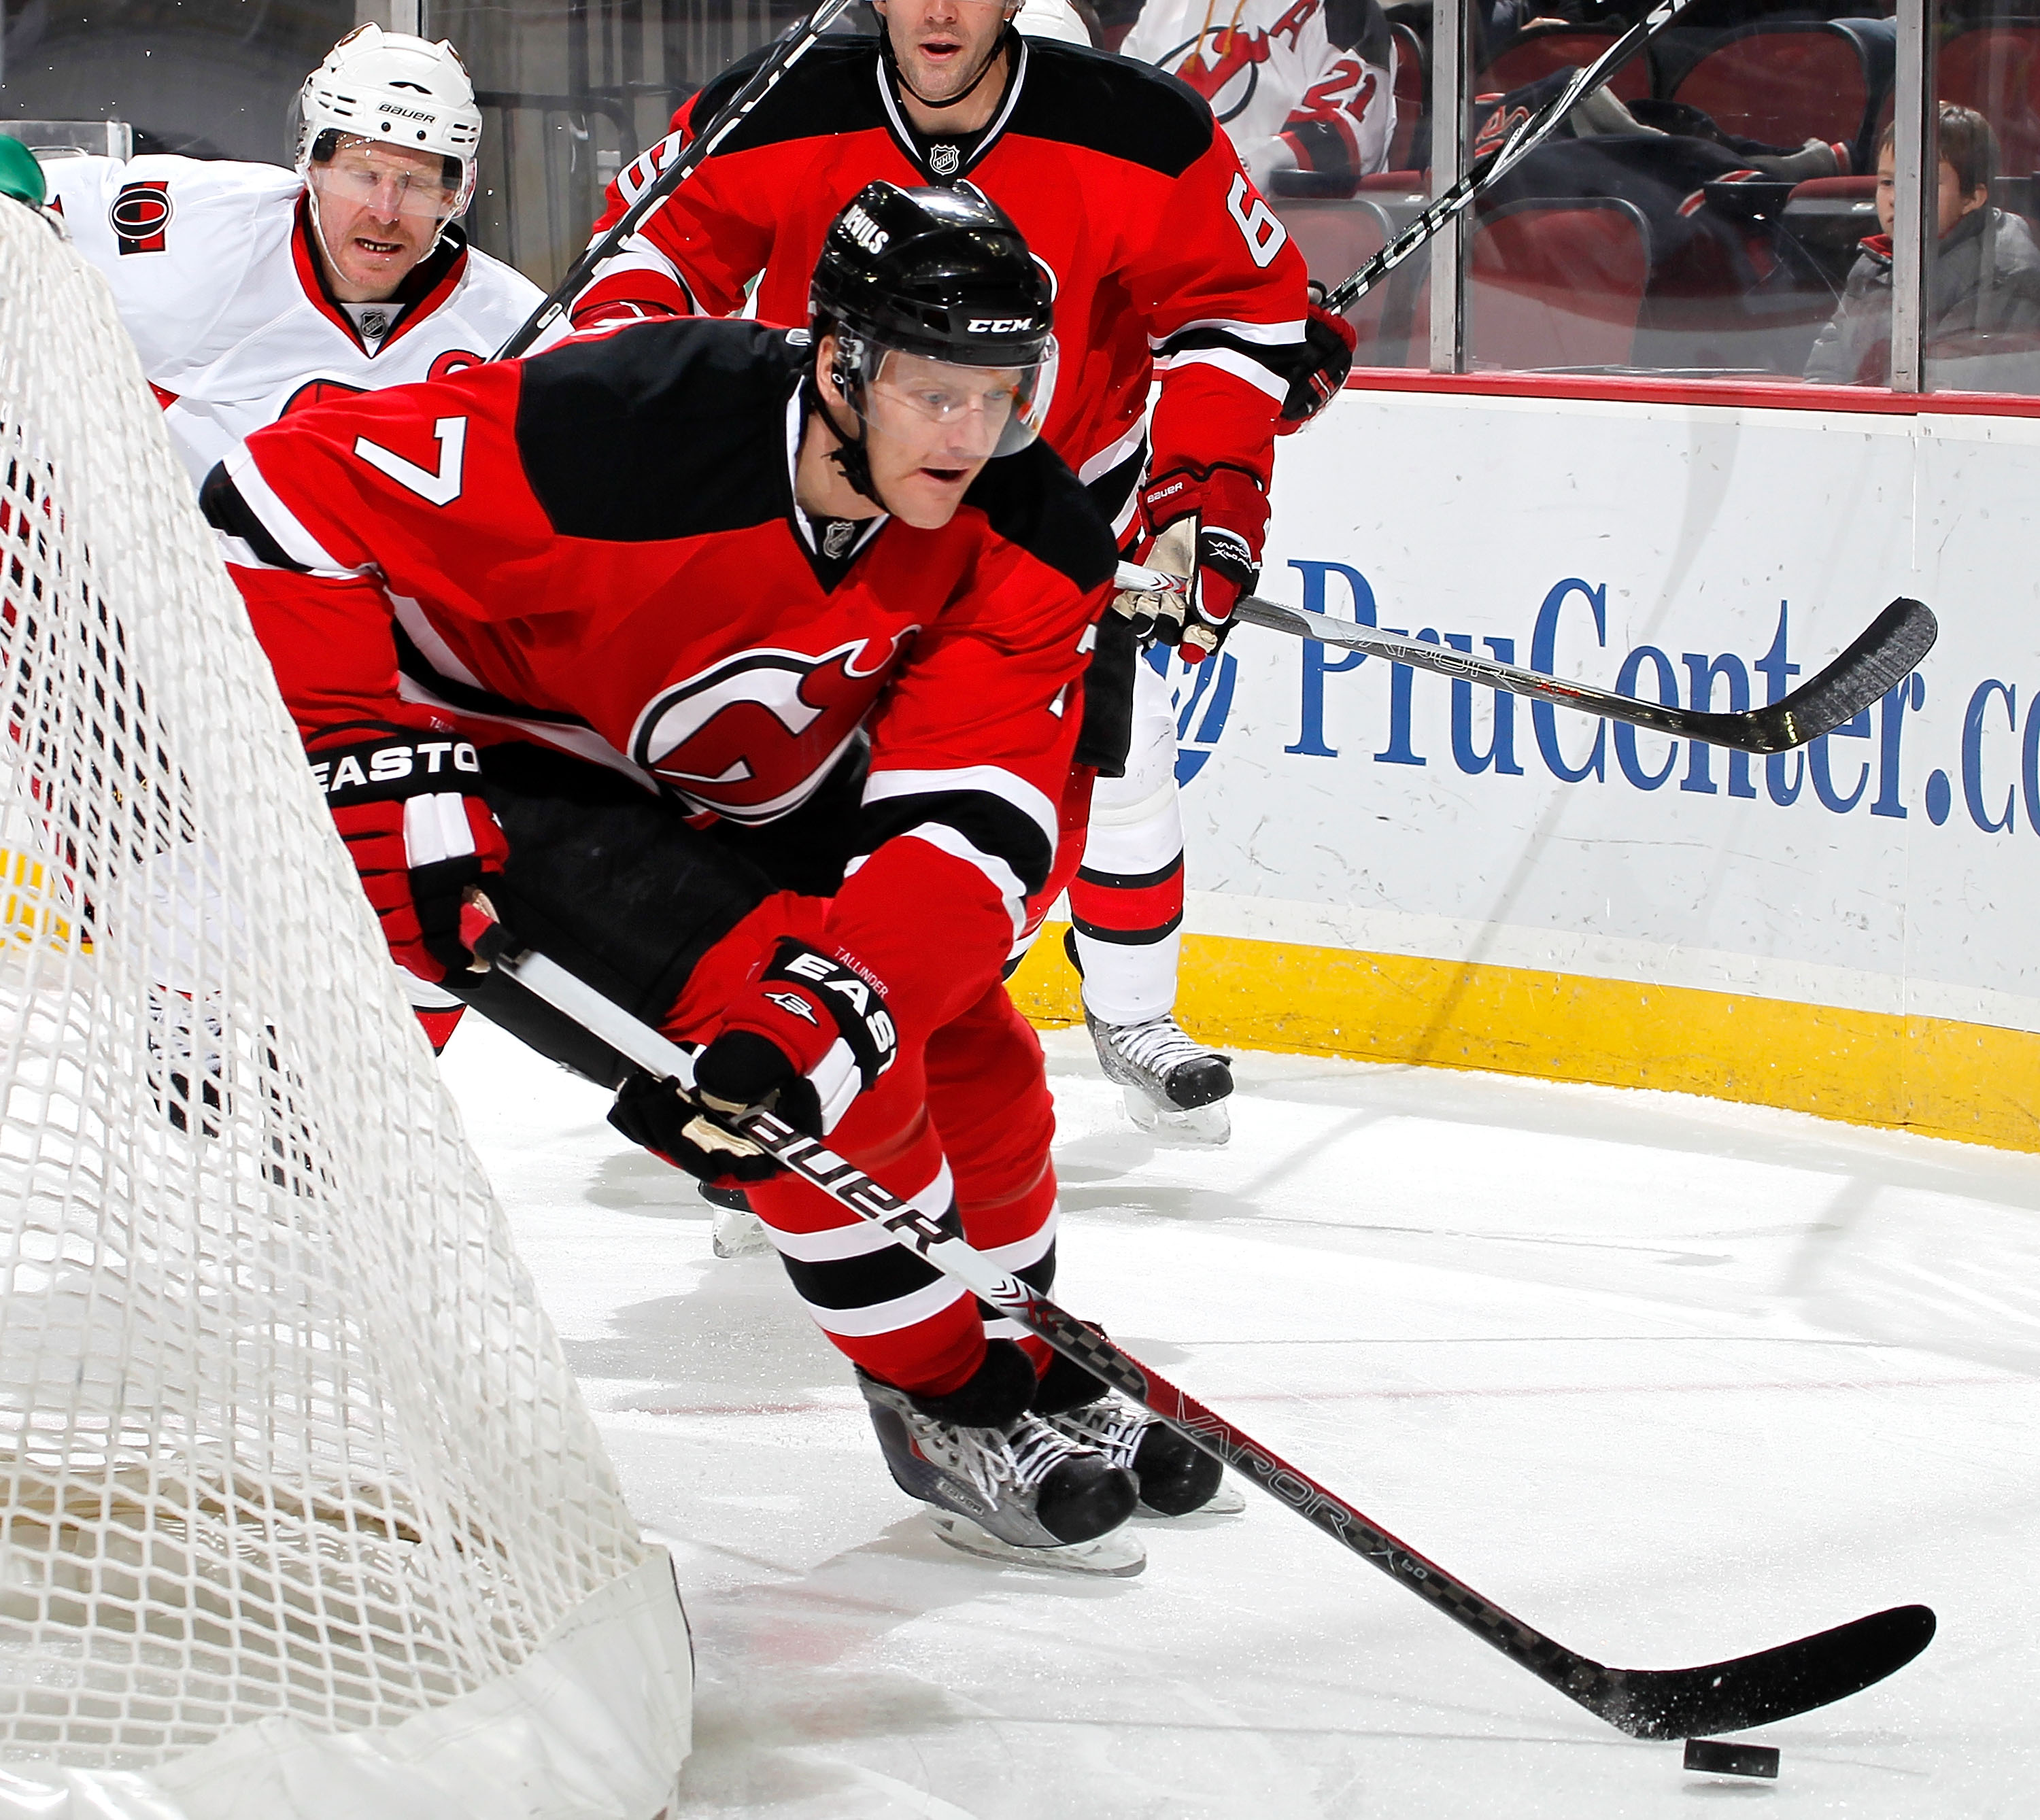 NEWARK, NJ - FEBRUARY 01:  Henrik Tallinder #7 of the New Jersey Devils skates during an NHL hockey game against the Ottawa Senators at the Prudential Center on February 1, 2011 in Newark, New Jersey.  (Photo by Paul Bereswill/Getty Images)